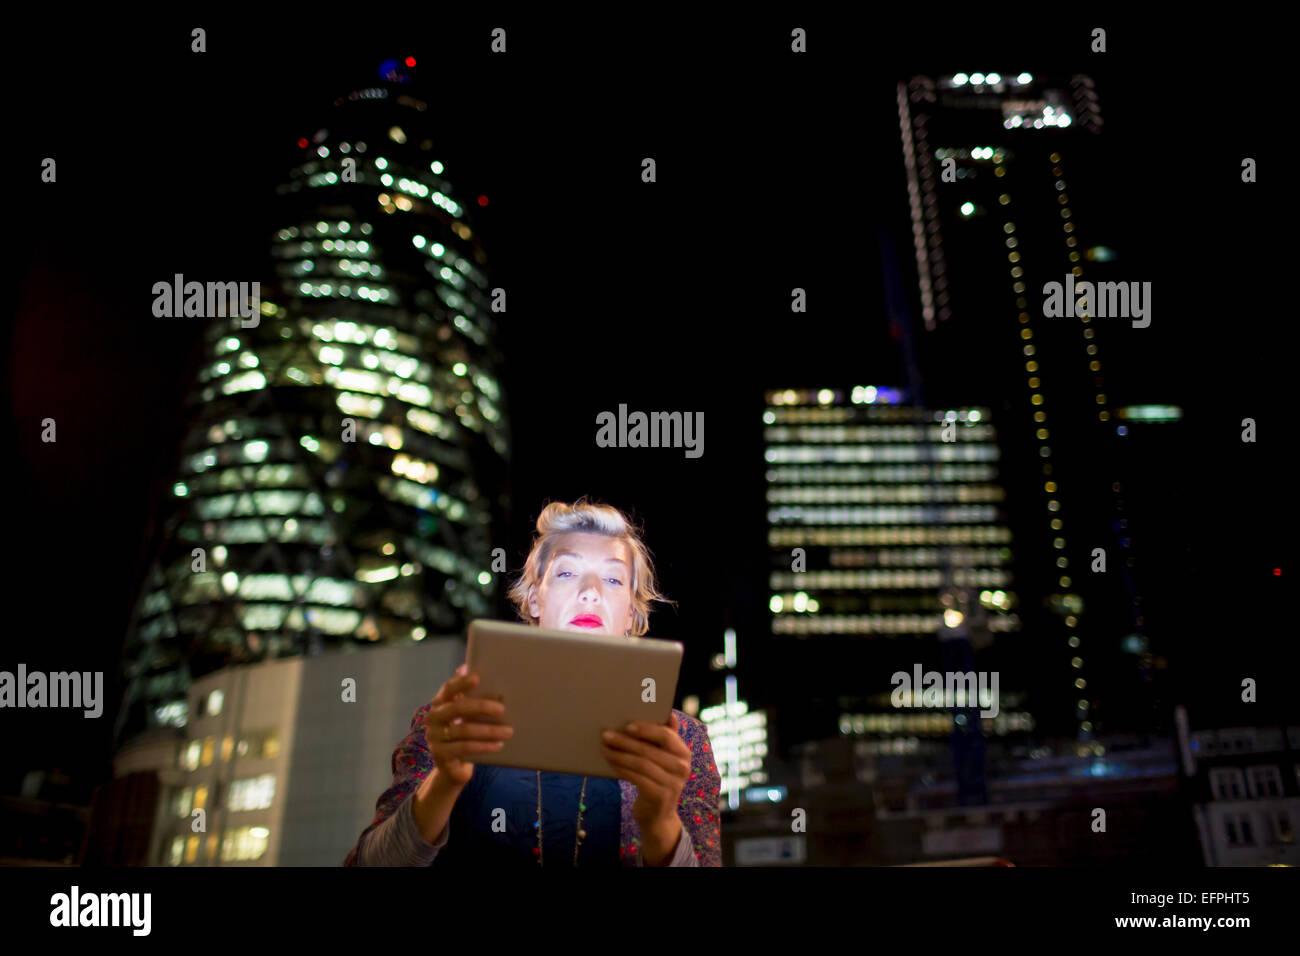 Mature woman in front of office buildings using digital tablet at night, London, UK - Stock Image